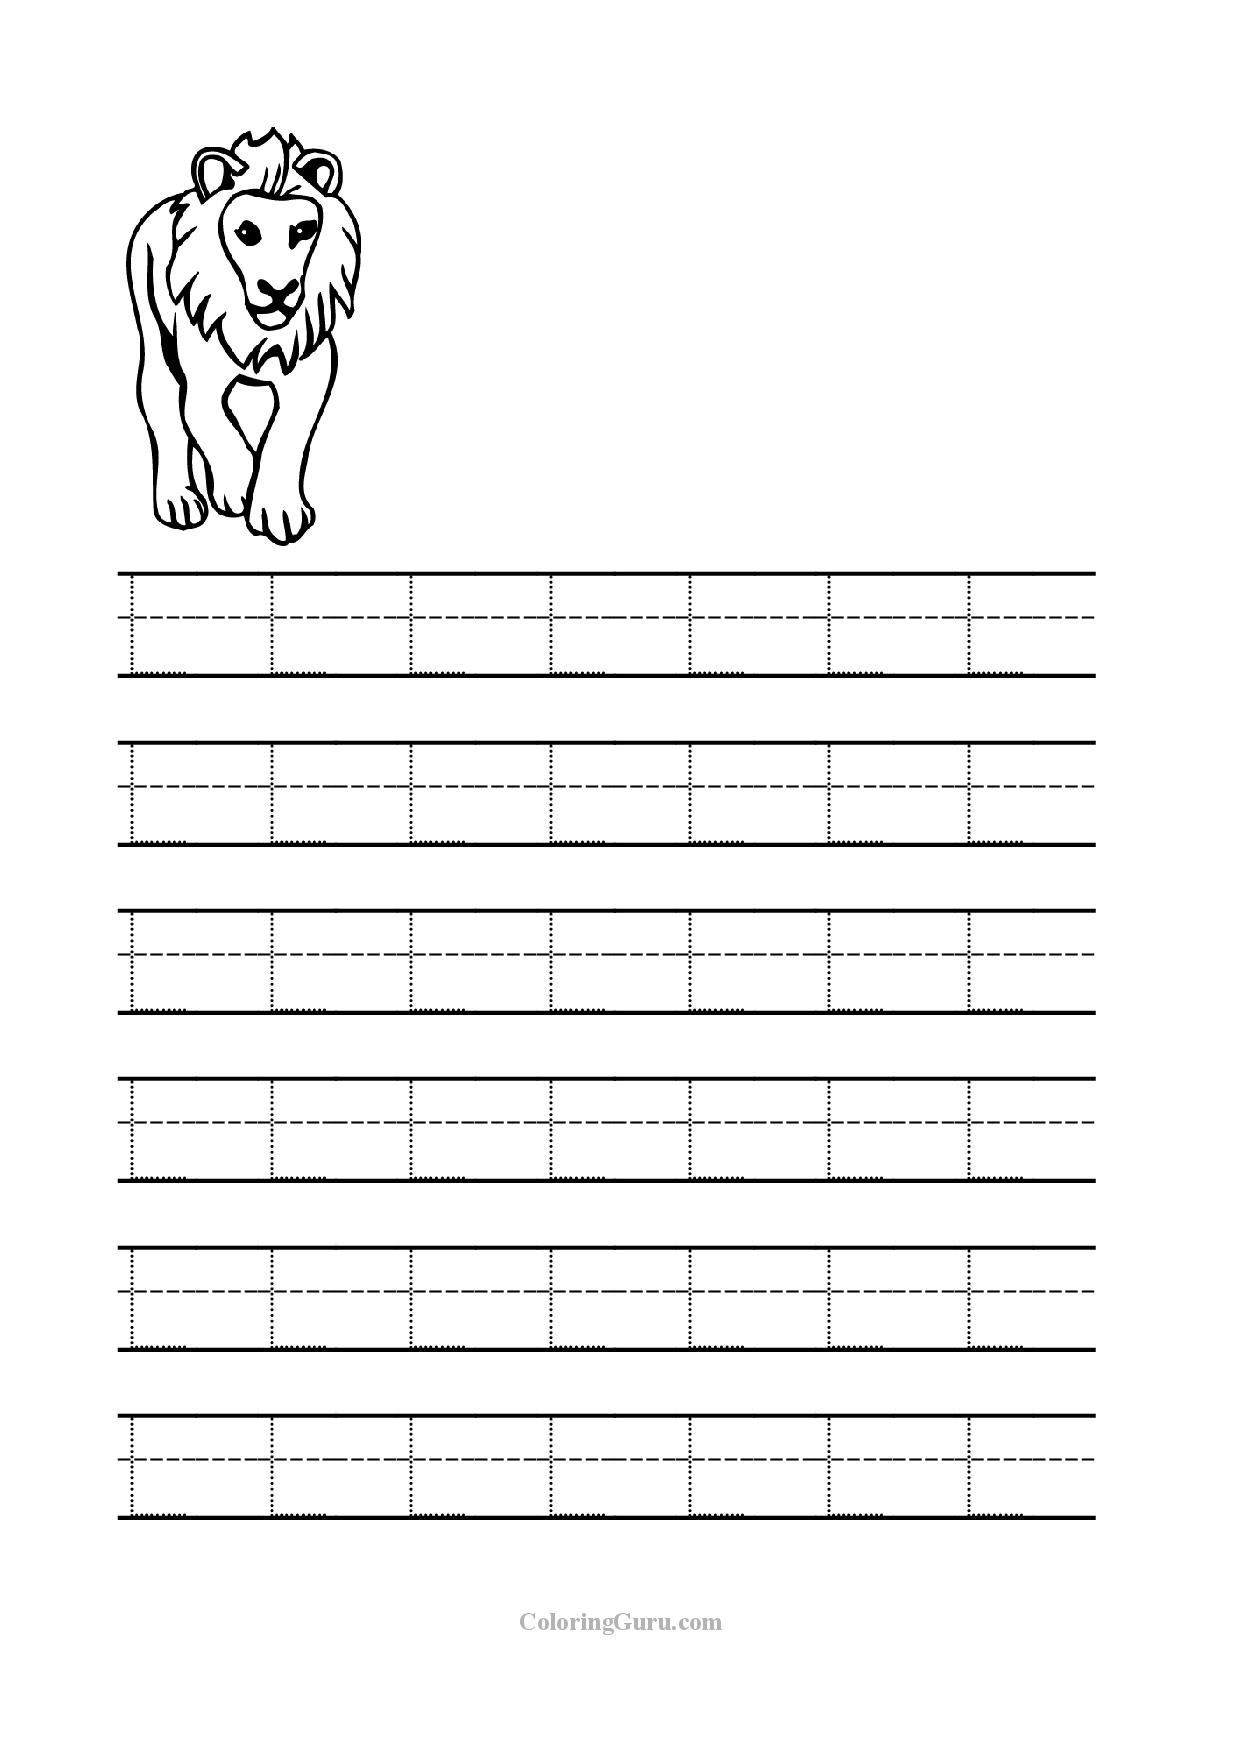 Letter L Worksheet Preschool Free Printable Tracing Letter L Worksheets for Preschool